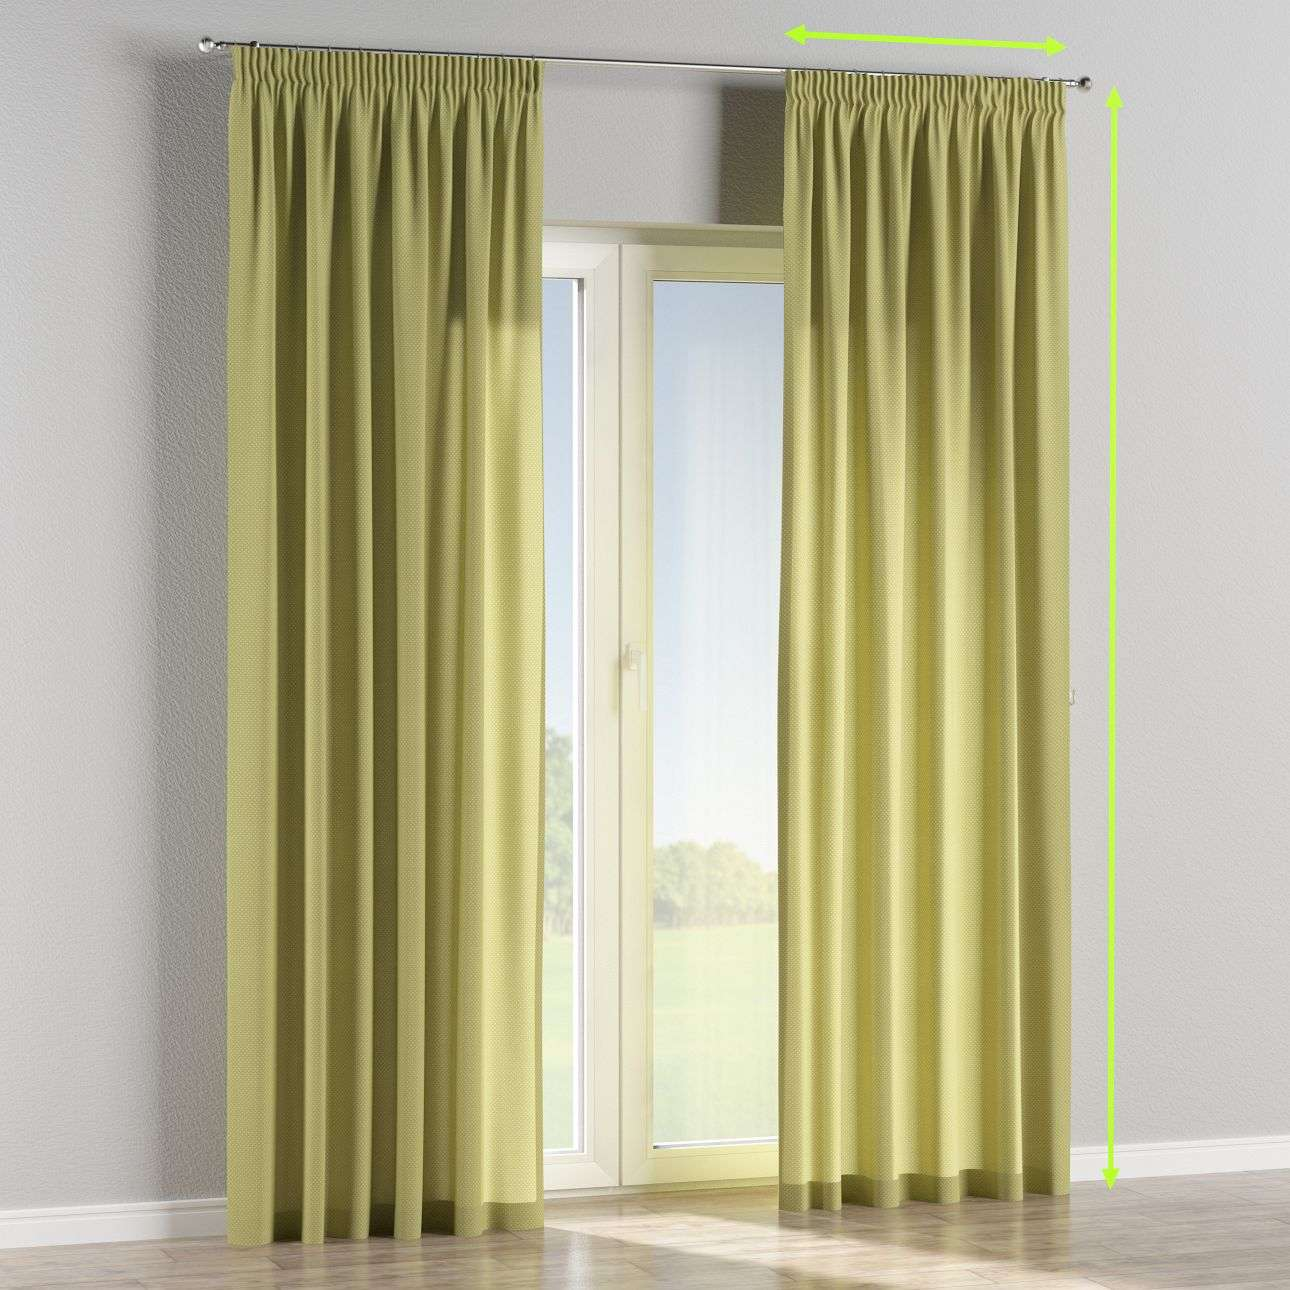 Pencil pleat lined curtains in collection Ashley, fabric: 137-51